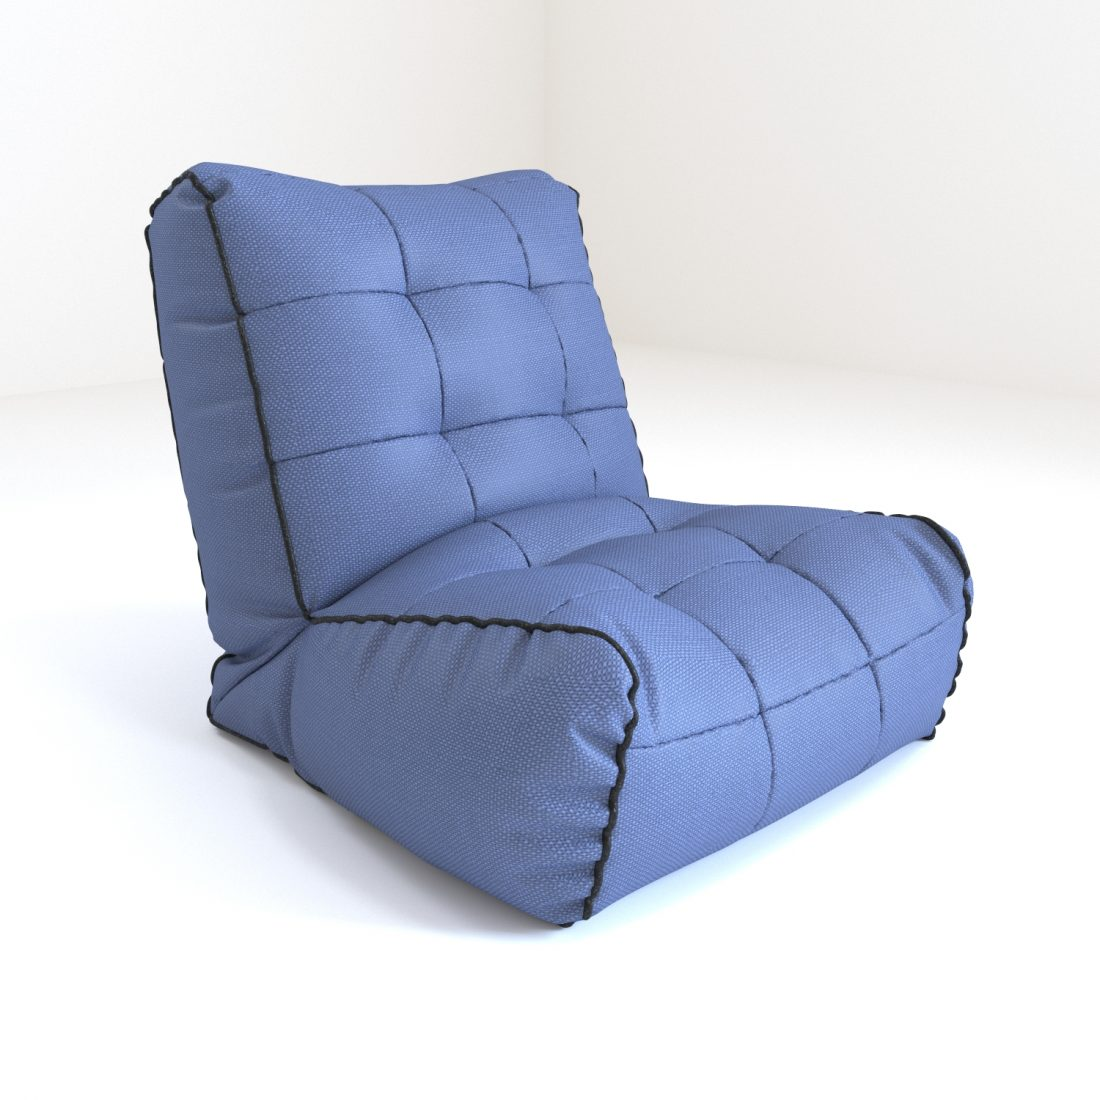 Free 3D model Chair VIO Loft by Vladimir Ogorodnikov